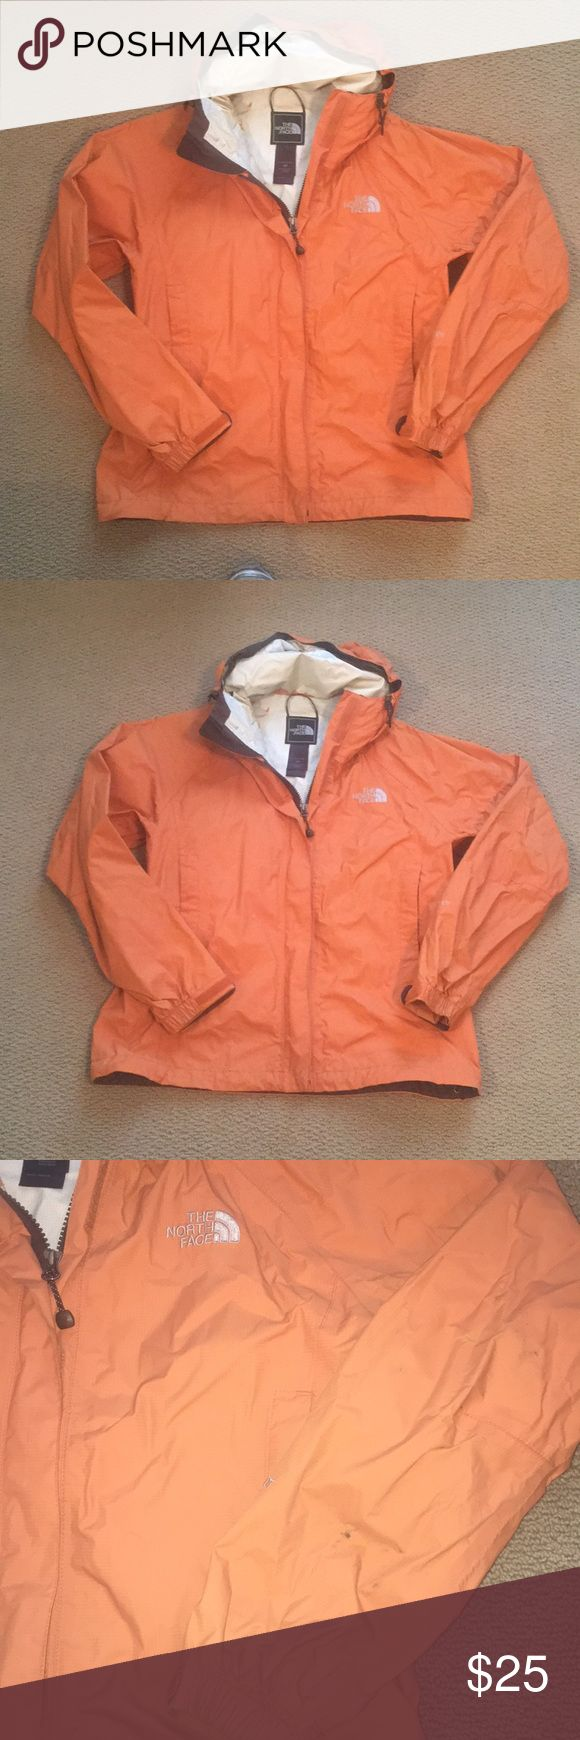 North Face Women's Rain Jacket North Face women's rain jacket, burnt orange color. Size small. Some dirt marks on sleeve, pictured. Good condition! North Face Jackets & Coats